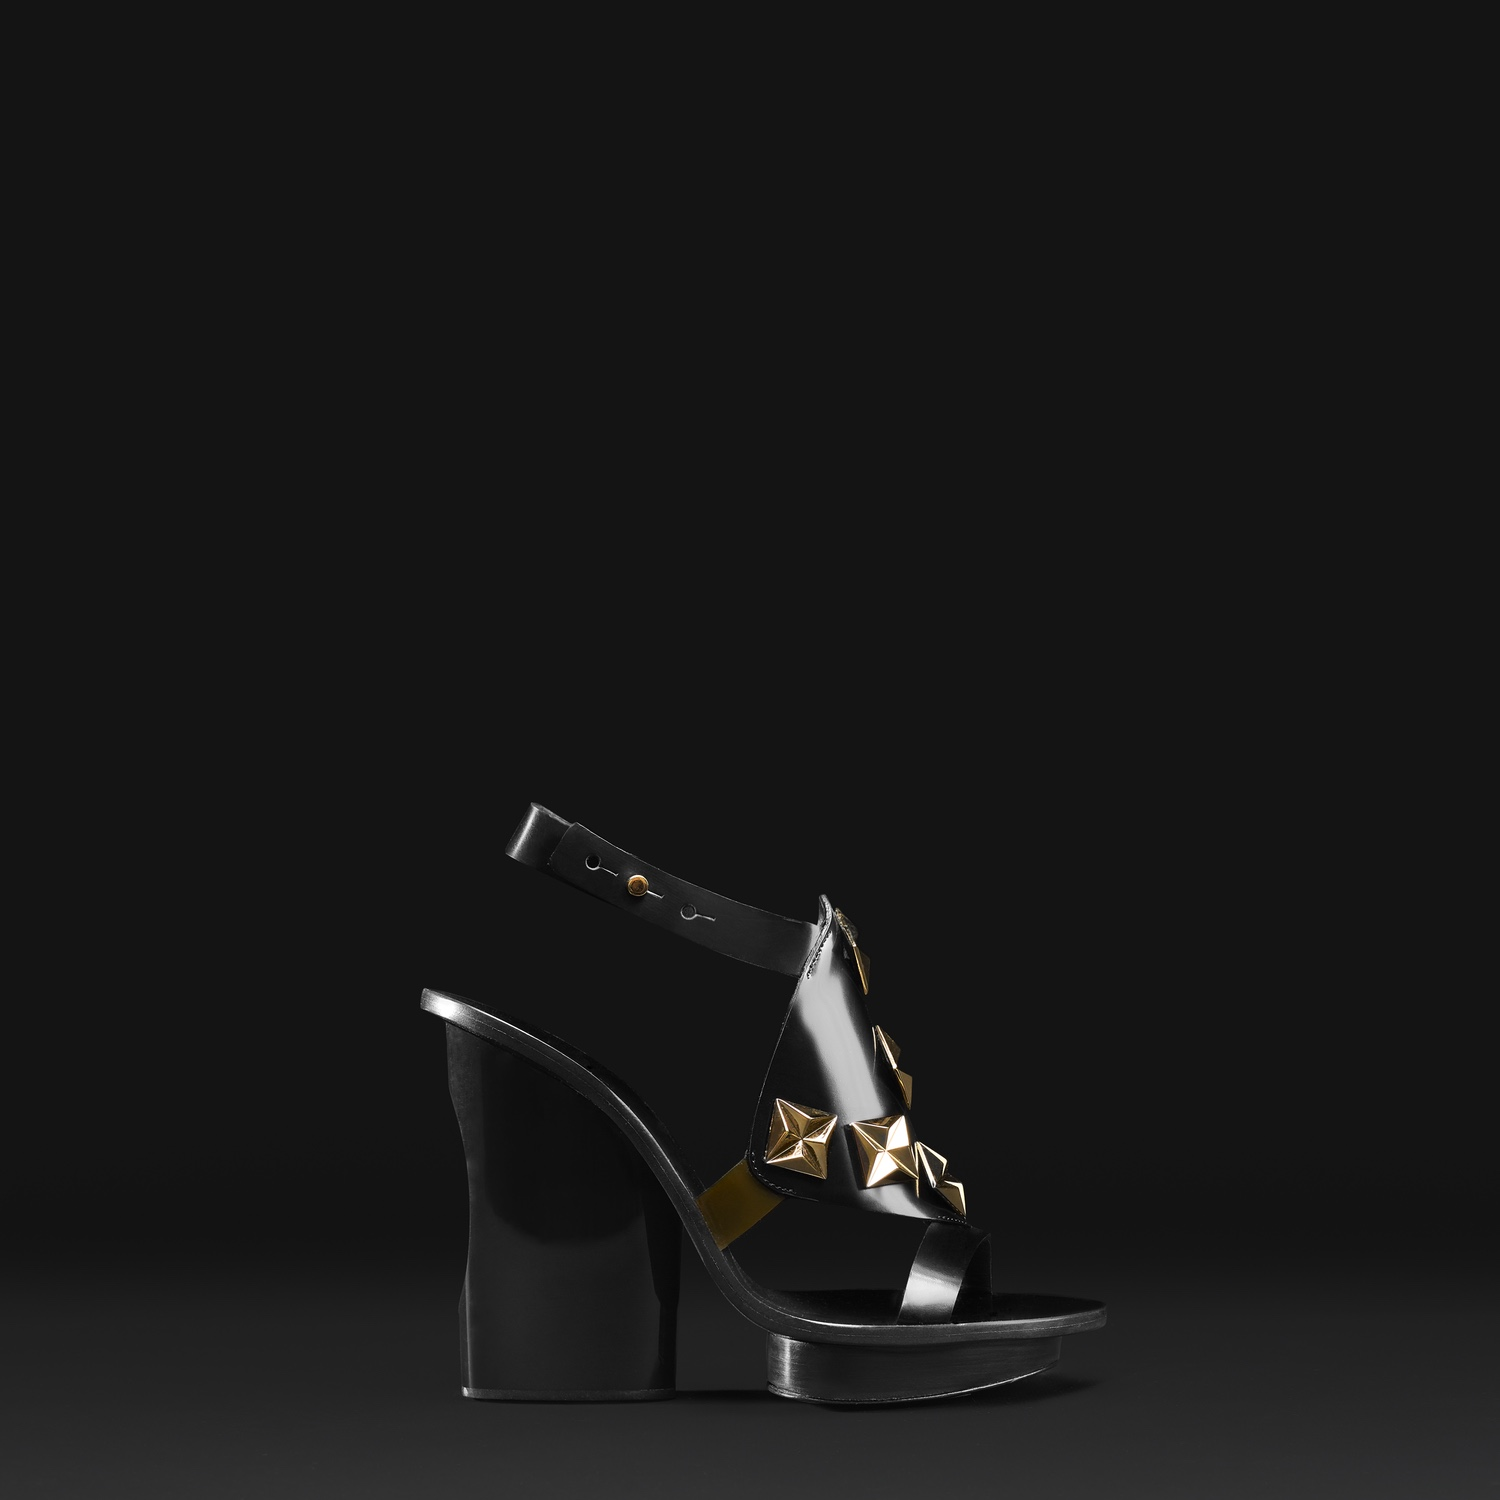 ALAINTONDOWSKI_FALLWINTER2015_SHOES_AT0020-B